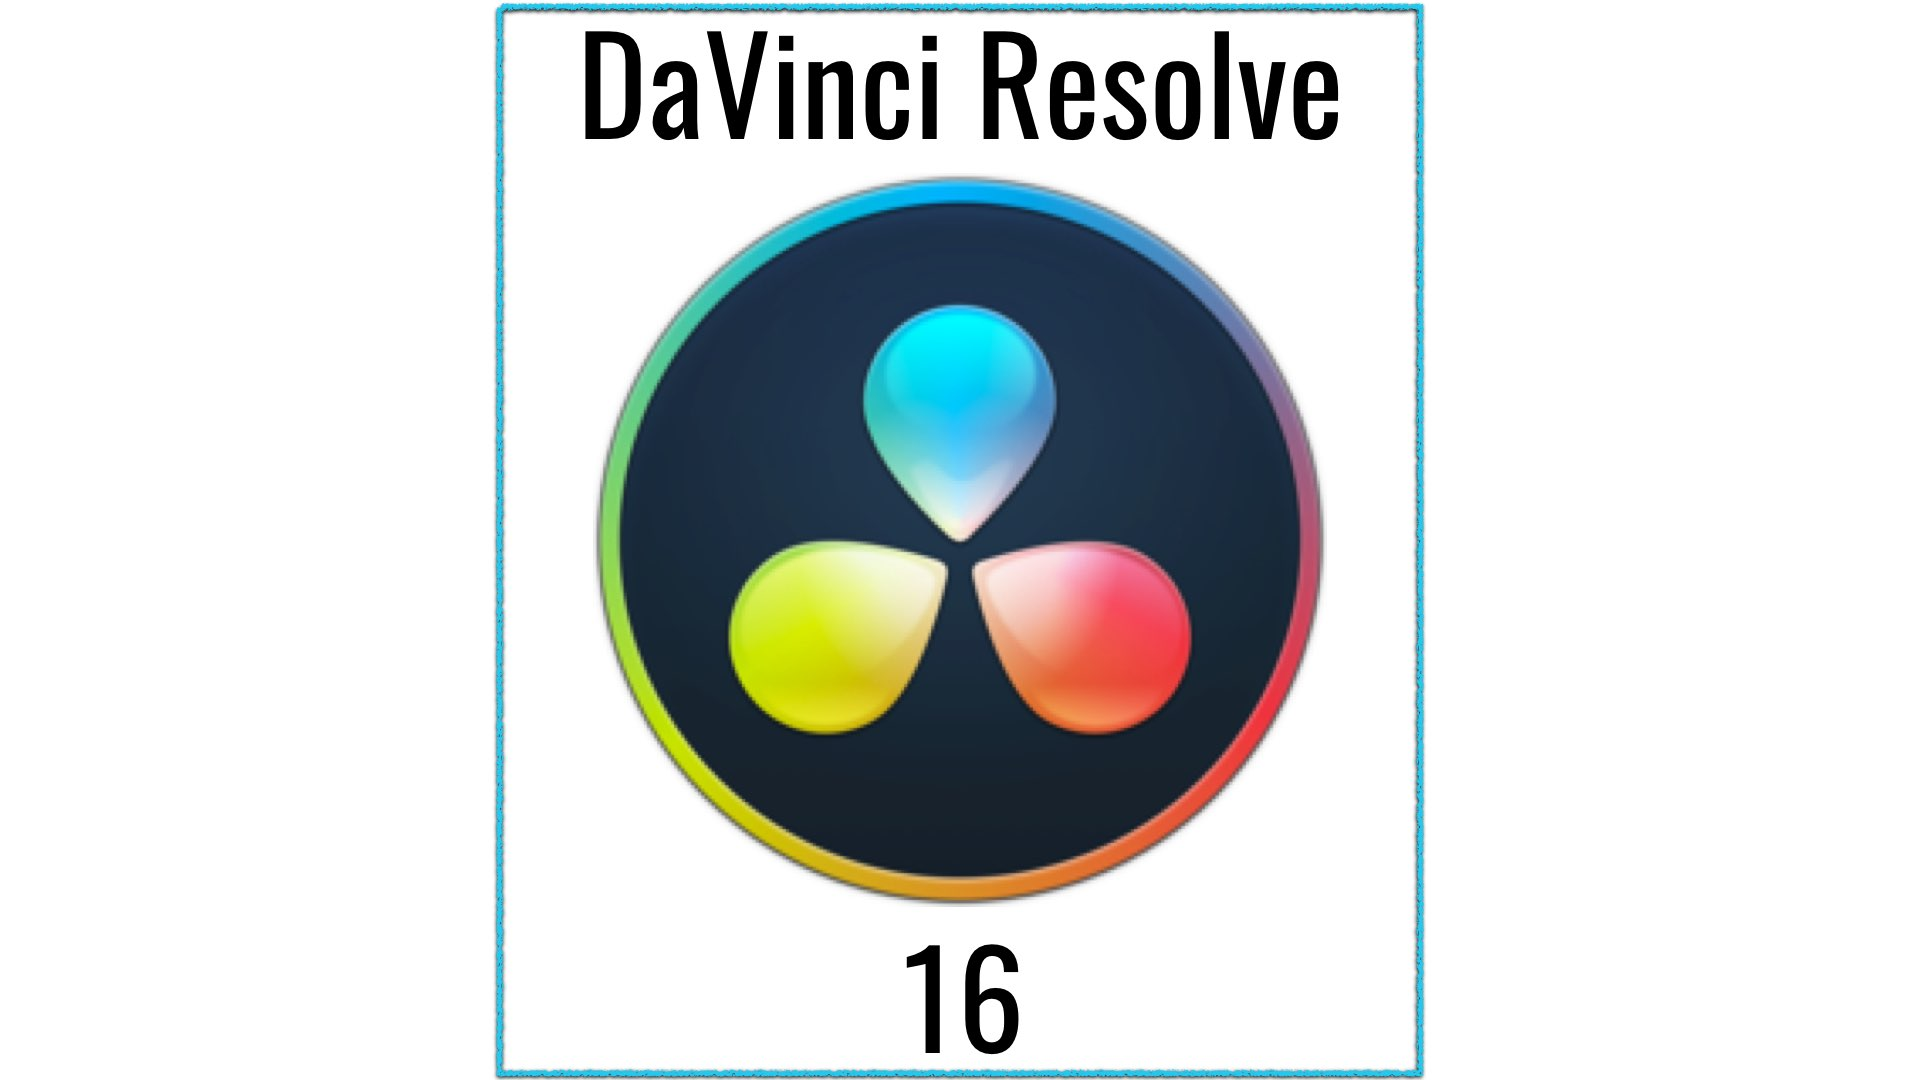 """Revolution in Editing"""": DaVinci Resolve 16 Will be Announced at NAB"""